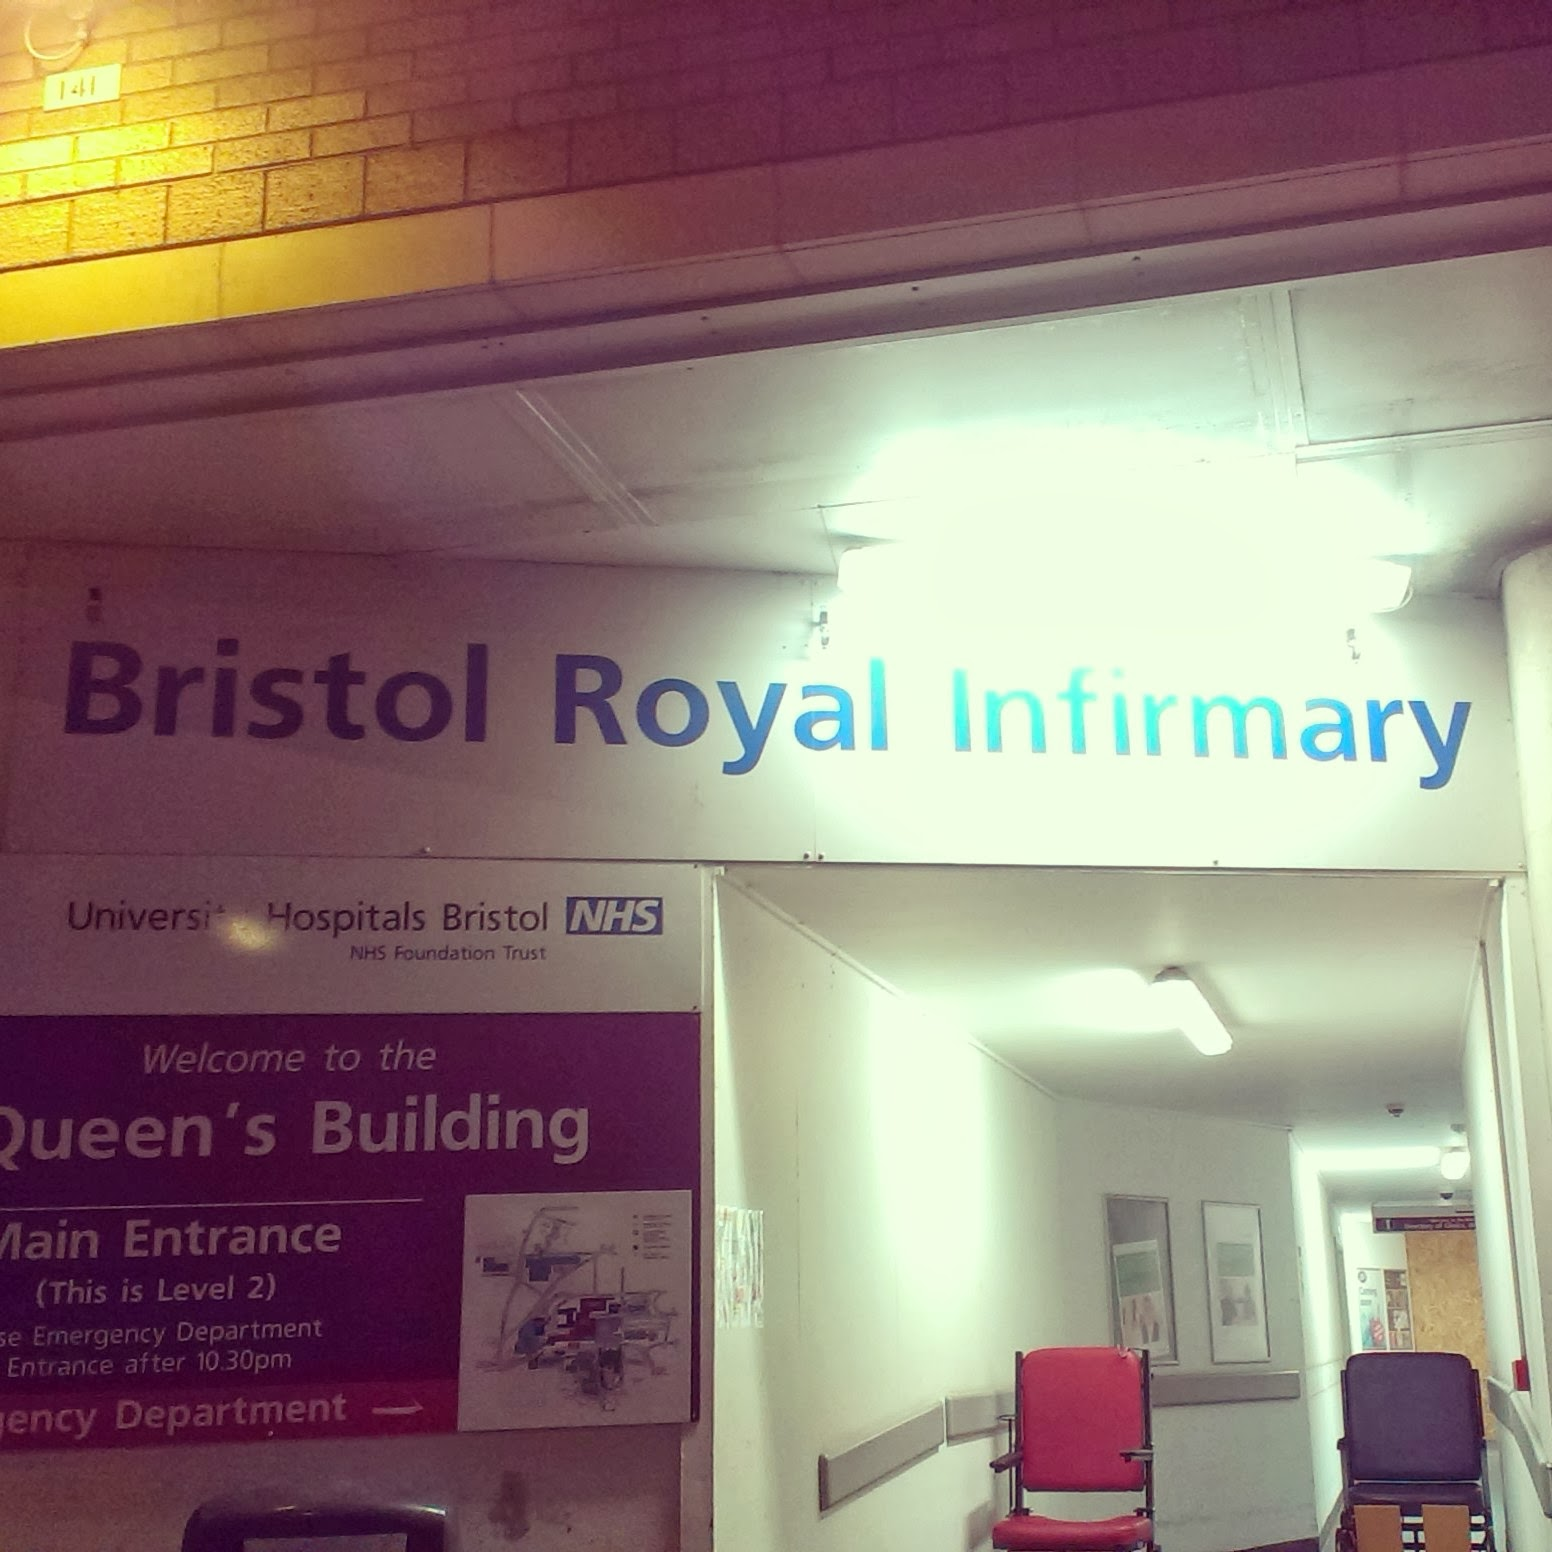 Bristol Royal Infirmary entrance